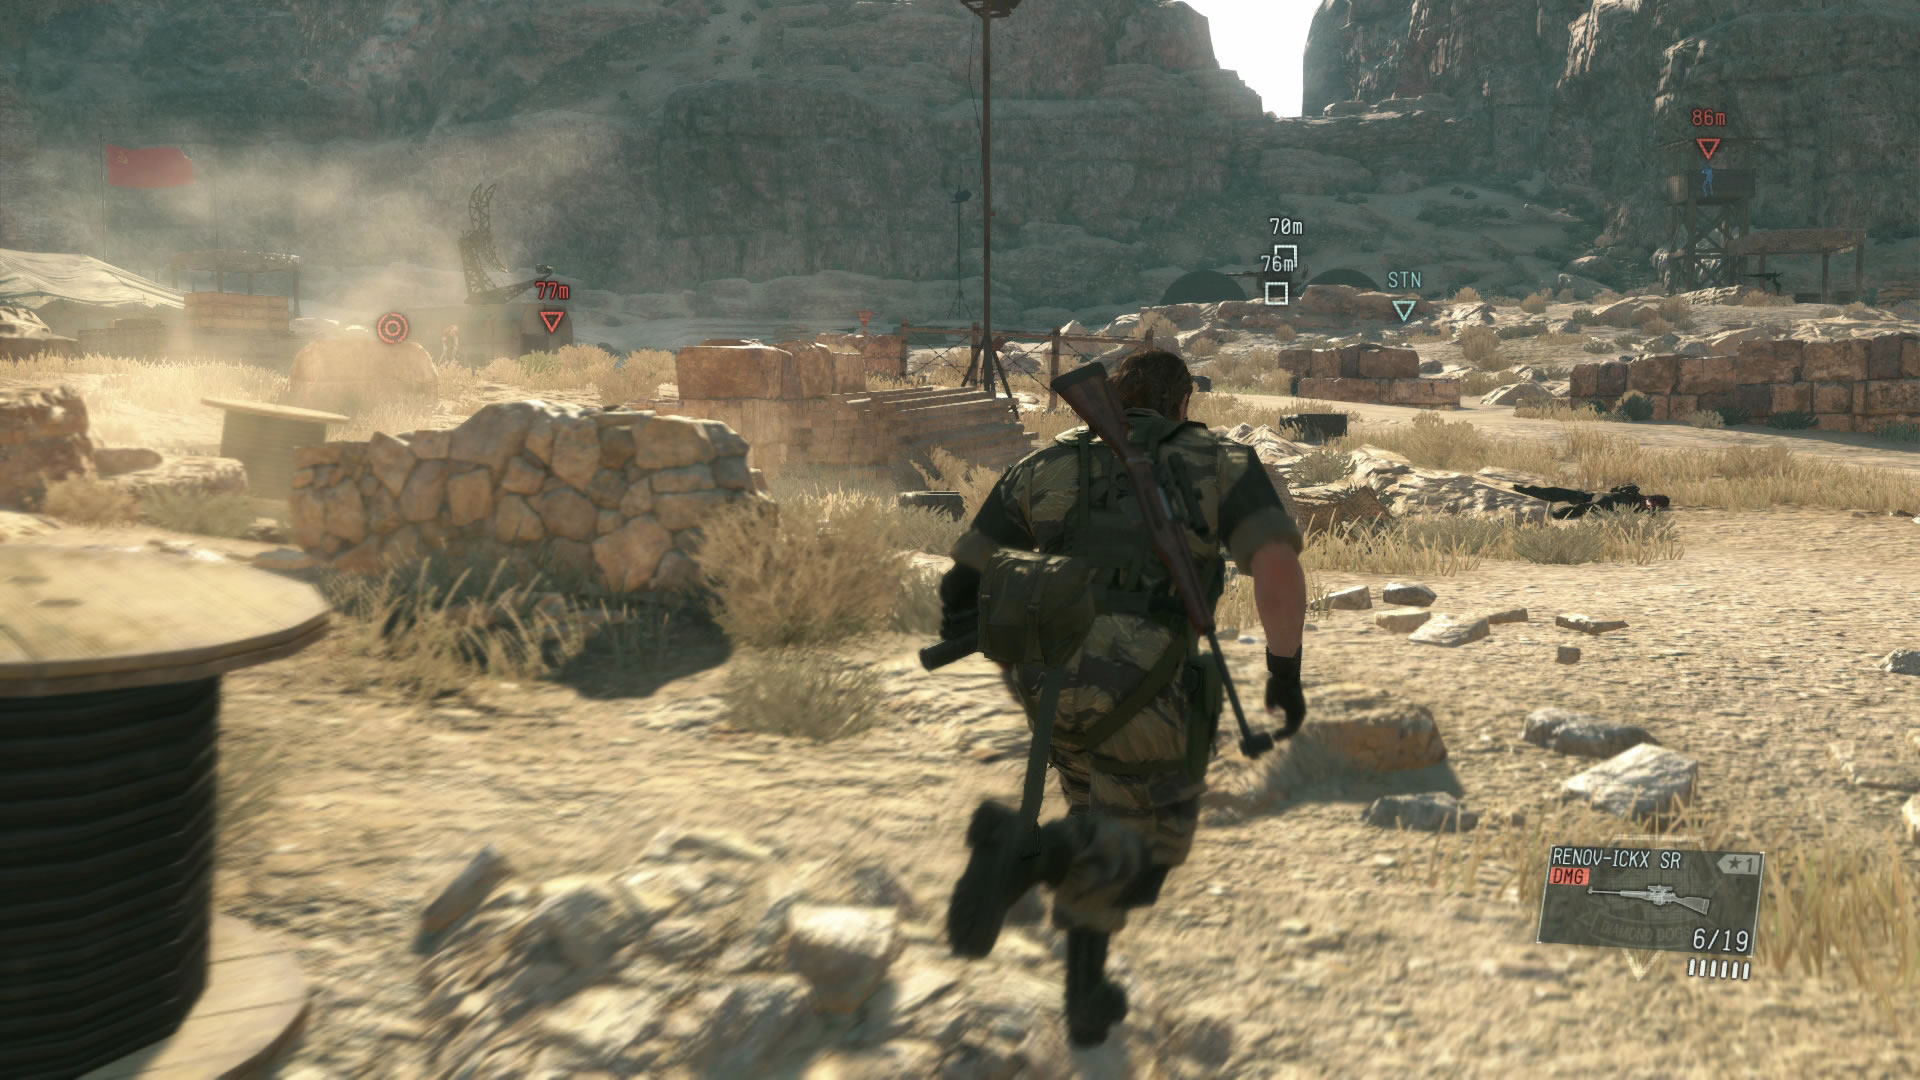 Metal-Gear-Solid-V-The-Phantom-Pain-Screenshot-9